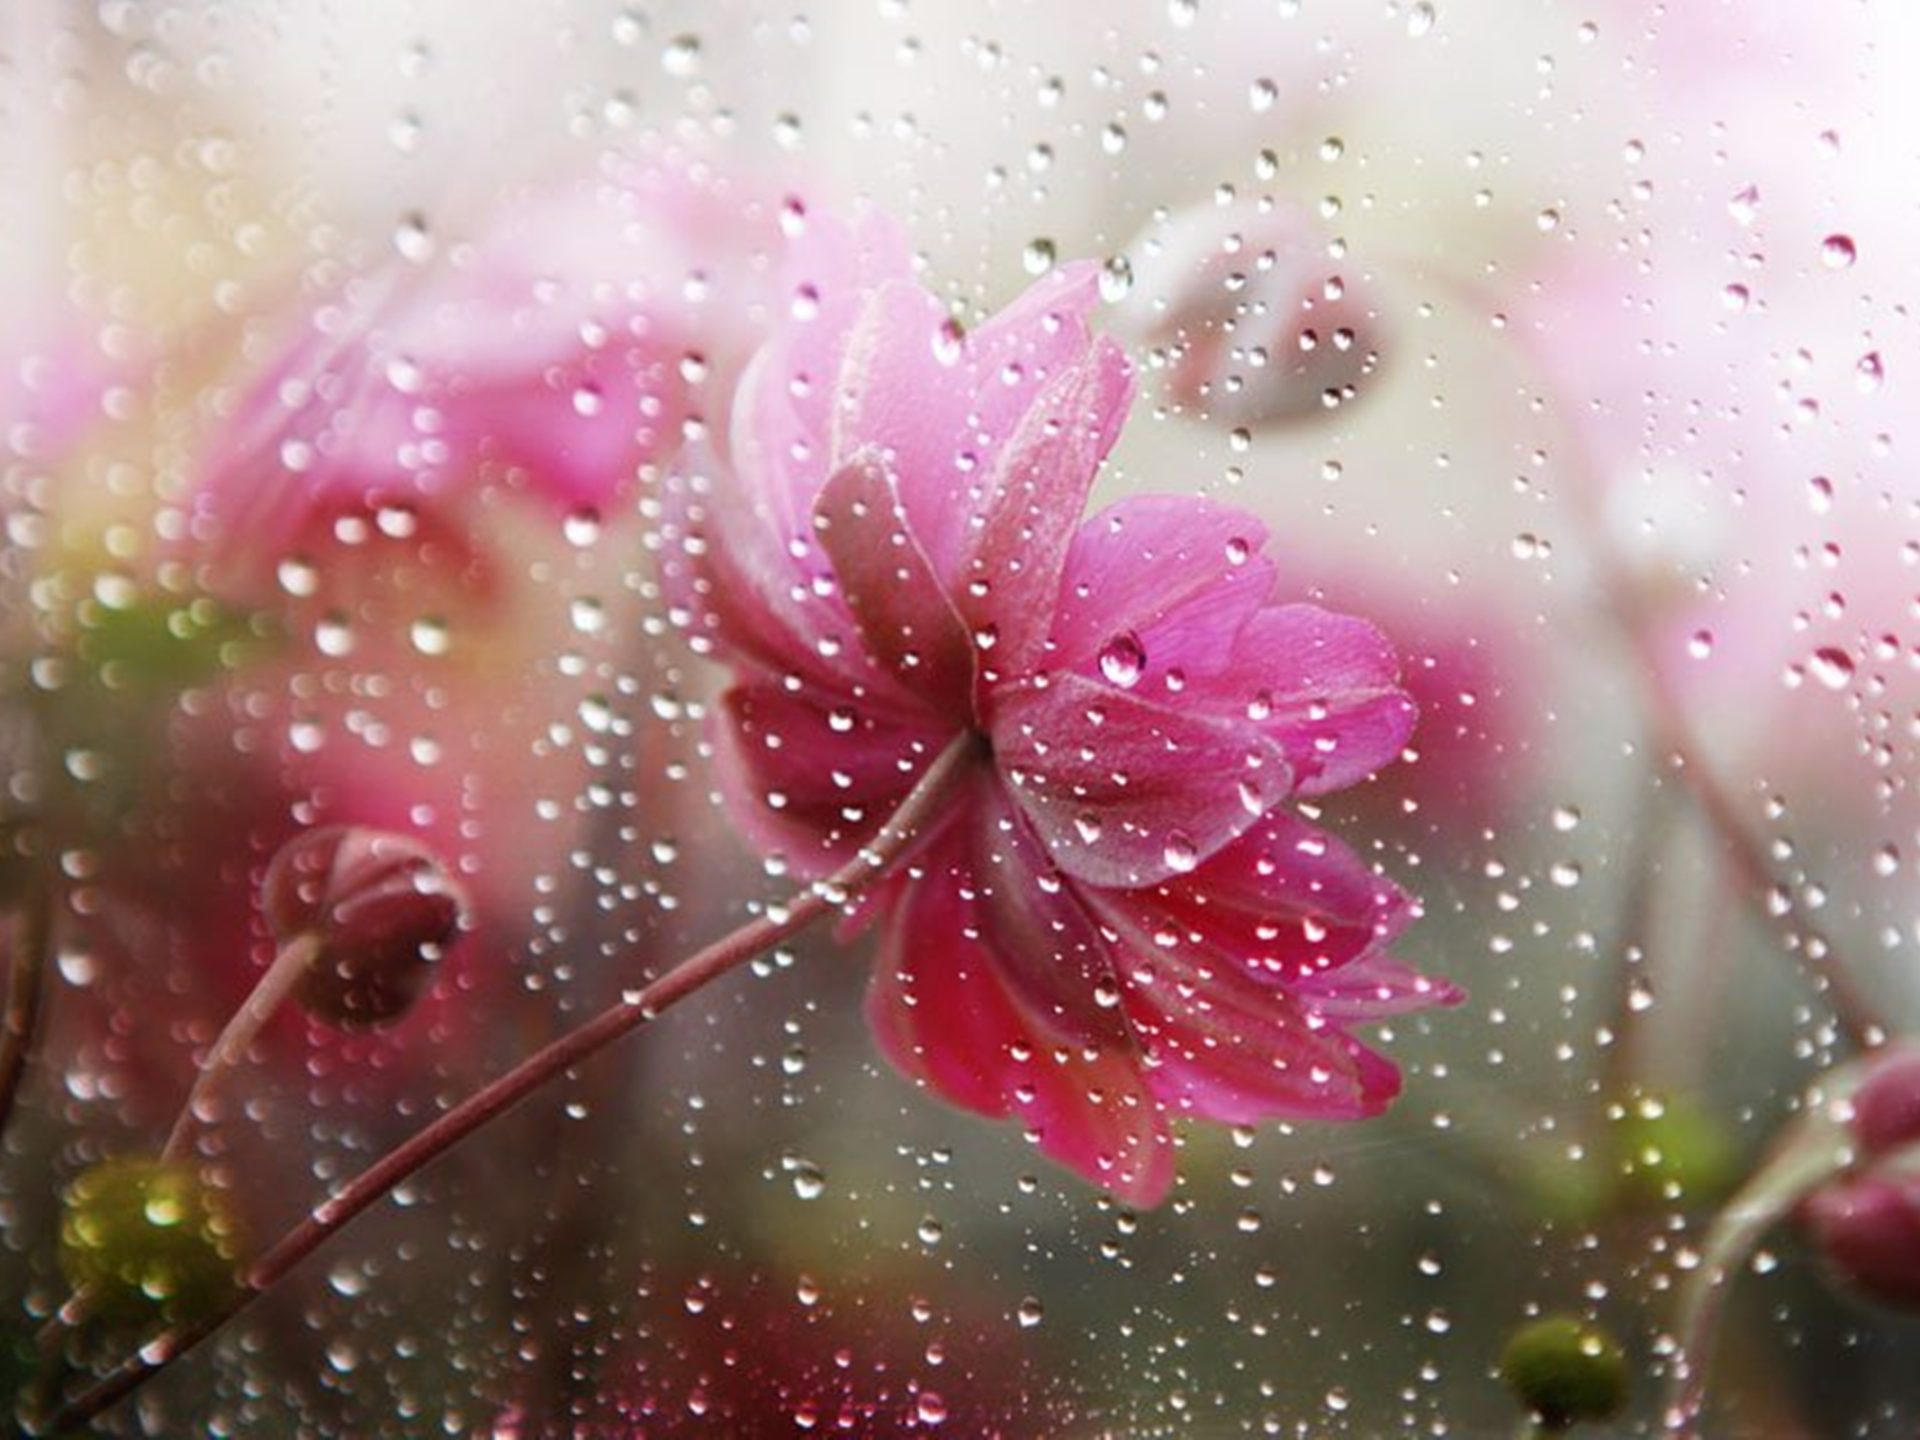 3d Wallpaper Download For Windows 10 Falling Rain In Flower Flowers Under The Rain